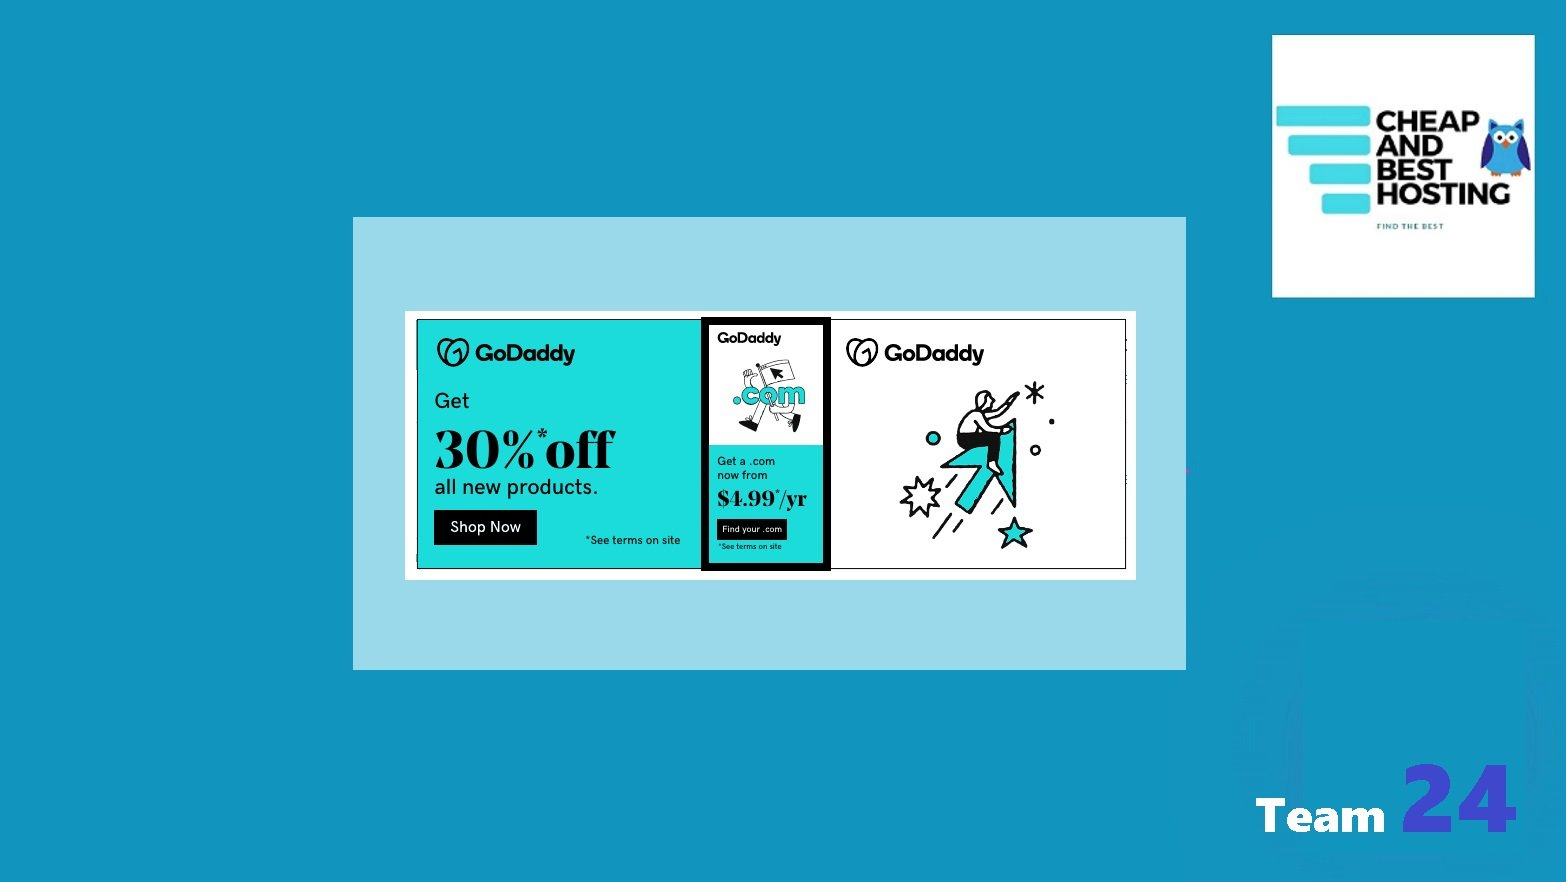 godaddy promo codes, godaddy coupons, godaddy domain renewal codes, godaddy offers and deals